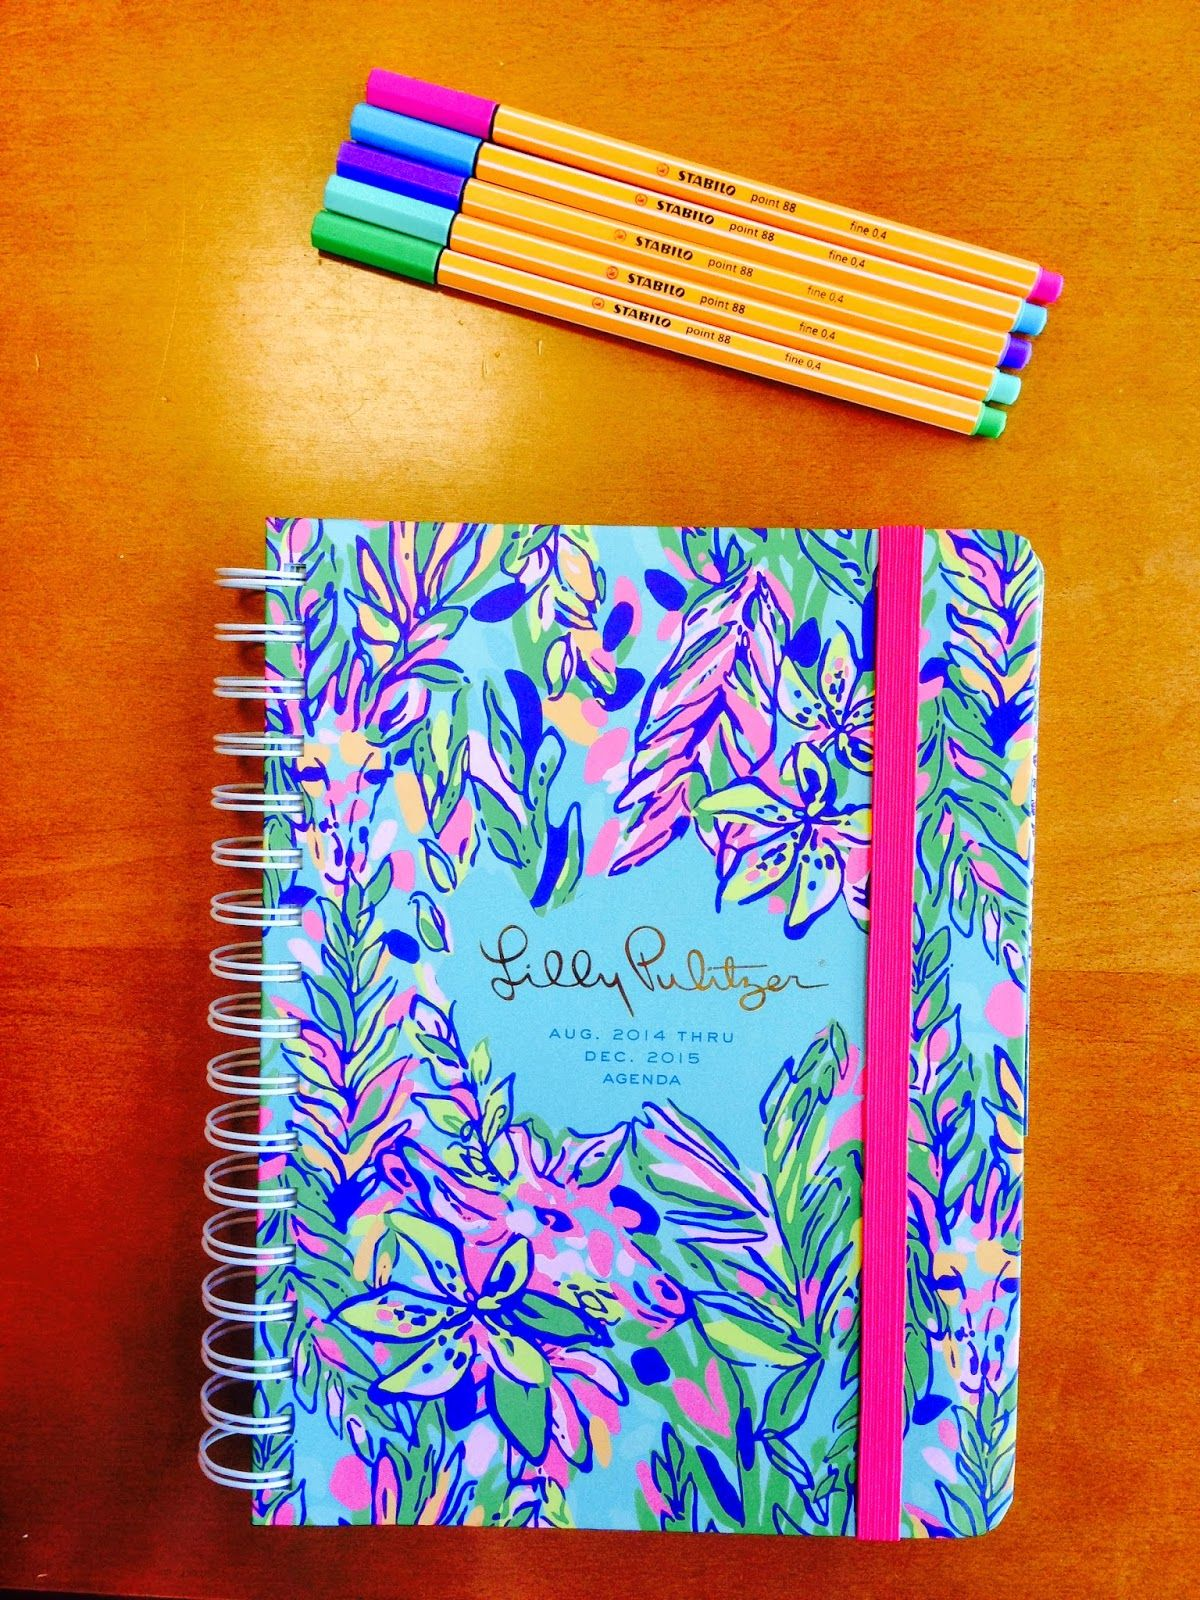 Livin Brightside Lilly Pulitzer 2014 2015 Agenda Review Let s Go Eers